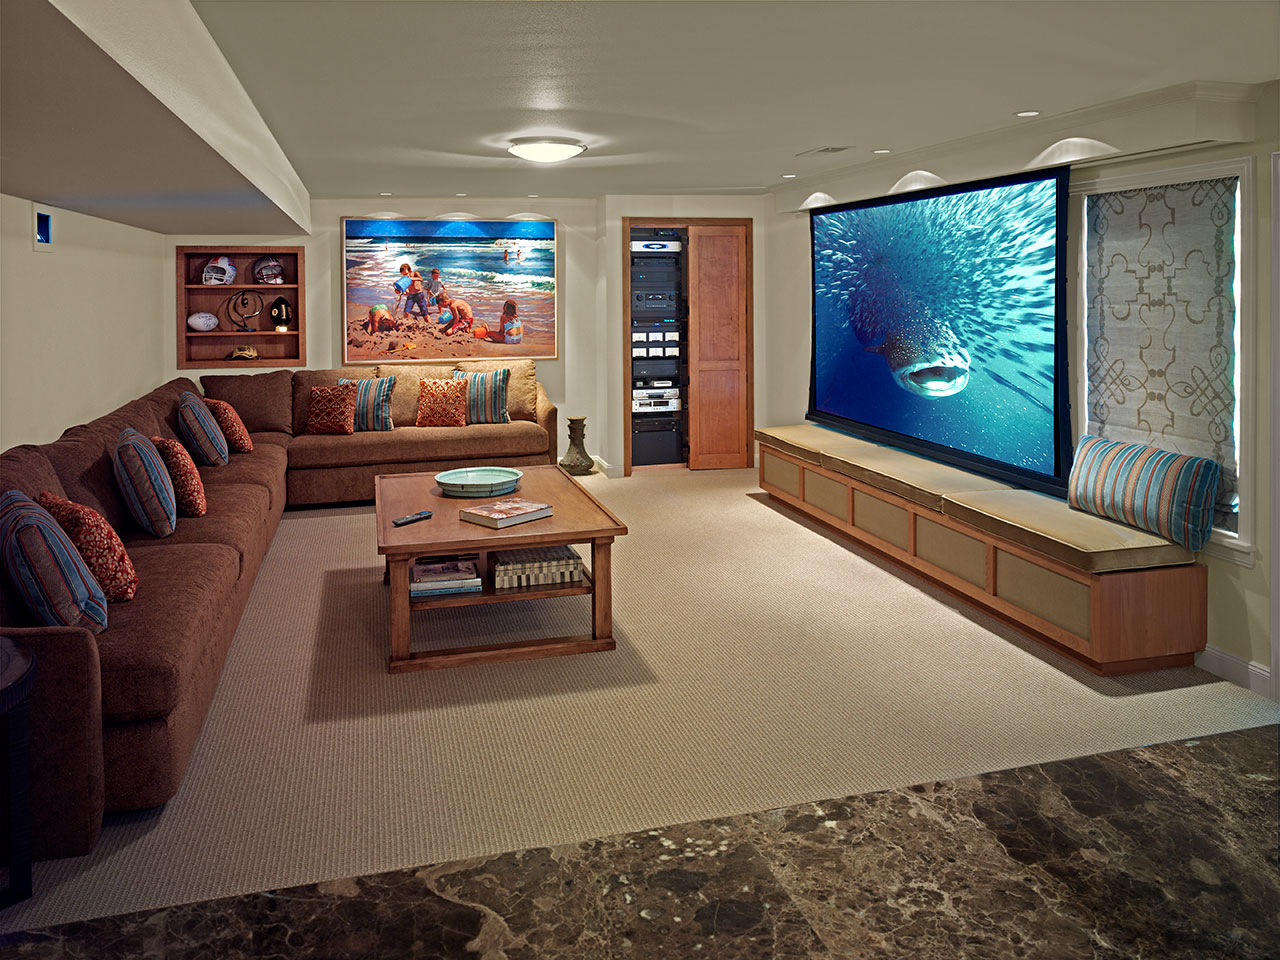 Why should you invest in a professional home theater system in Scottsdale?